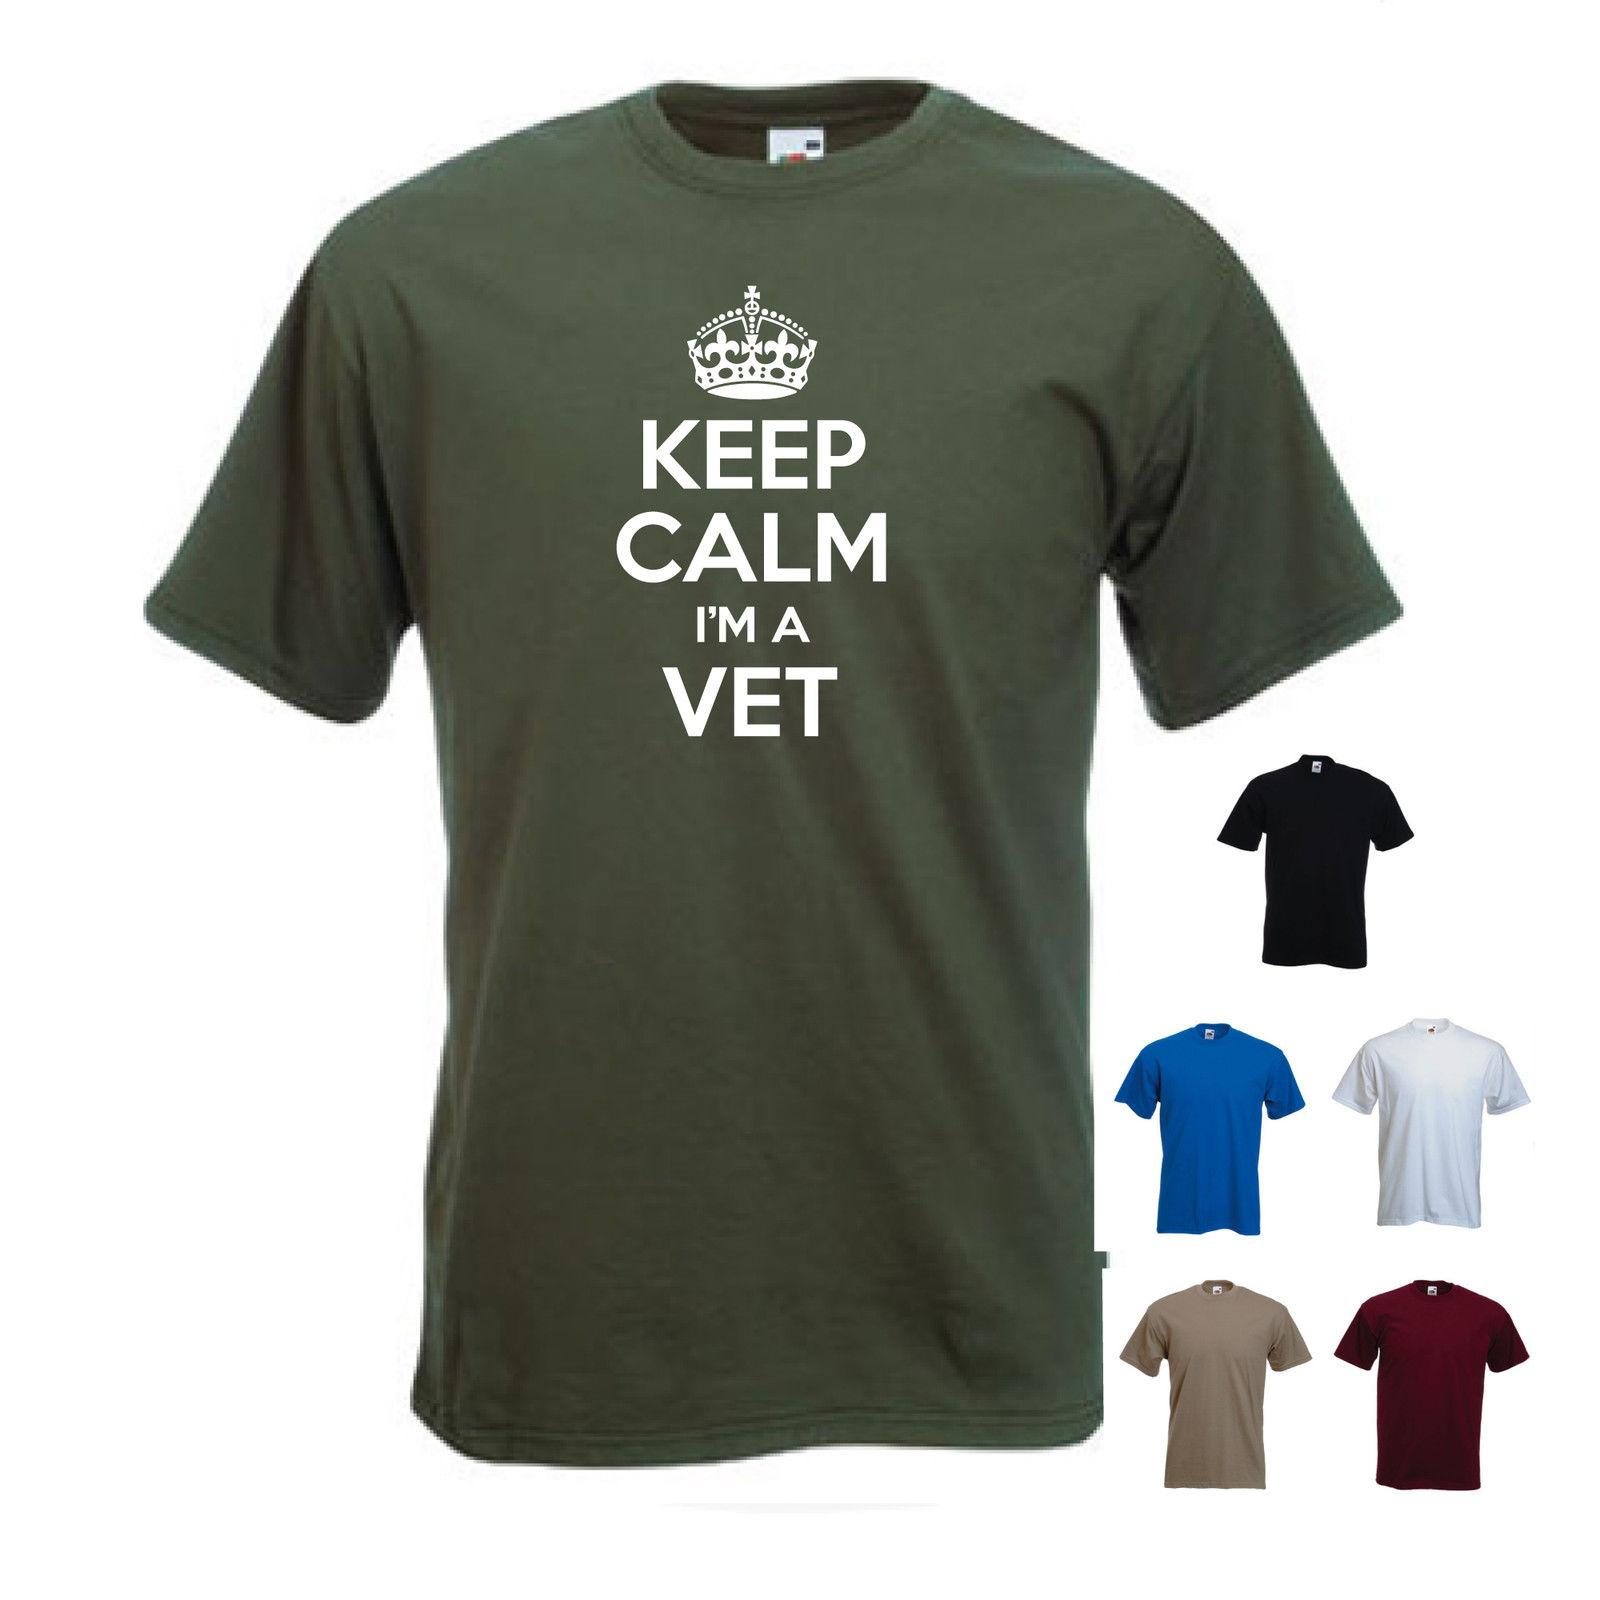 3208d061 'Keep Calm I'm a Vet' Veterinarian Funny Gift T-shirt Tee Funny free  shipping Unisex Casual Tshirt top